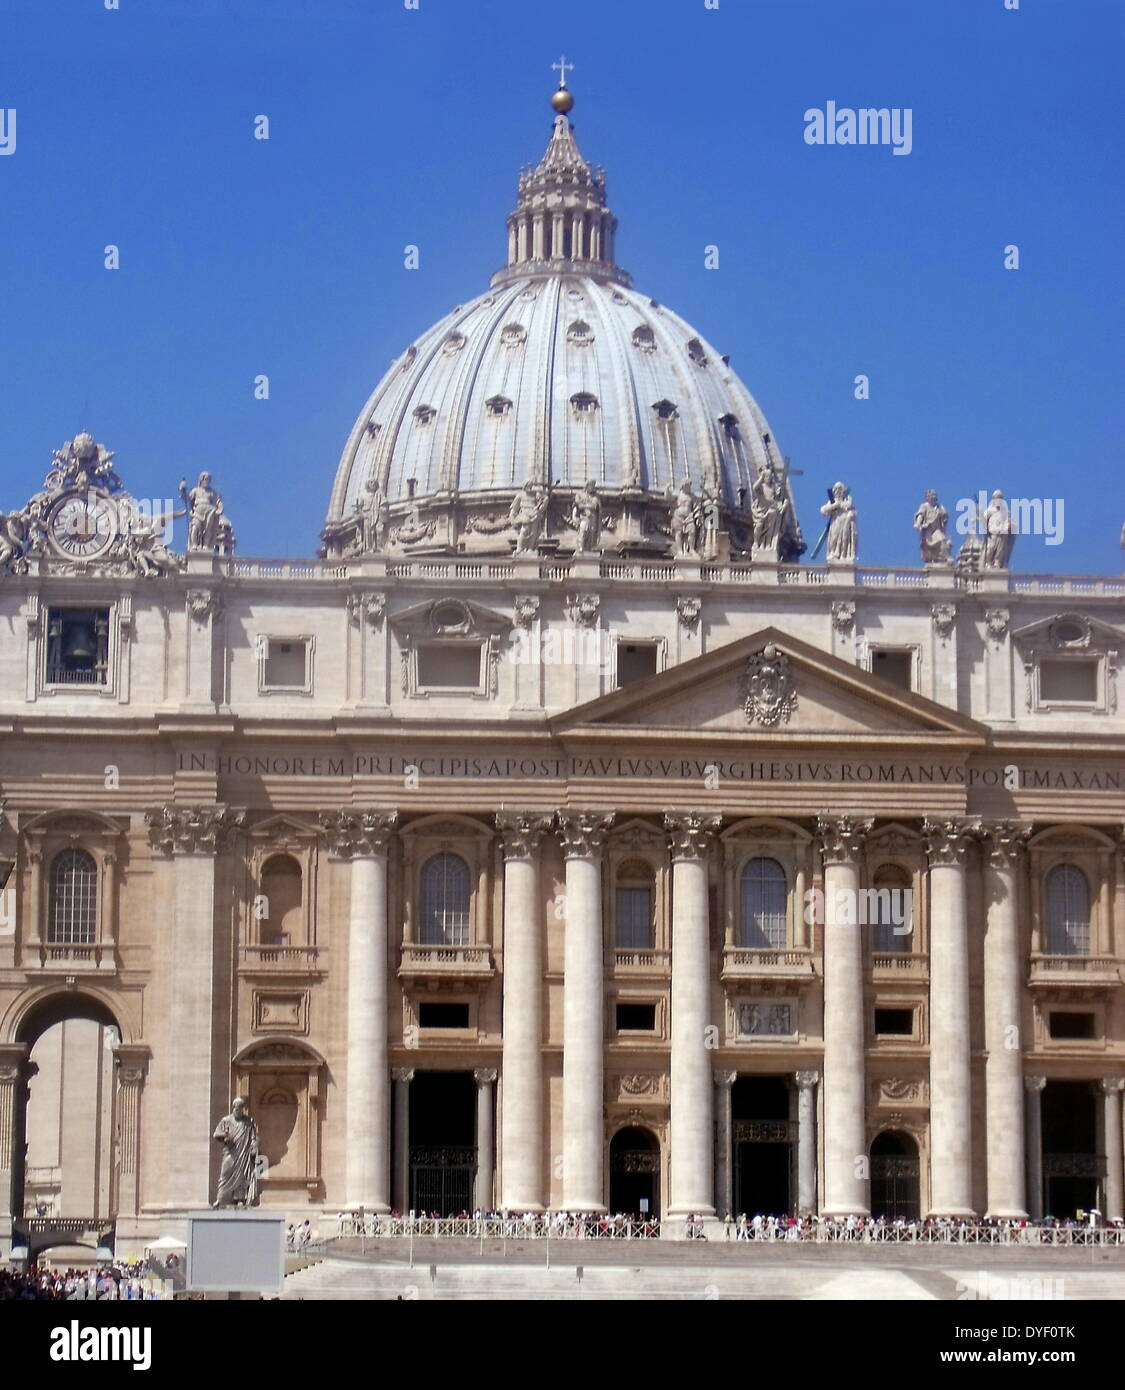 St. Peter's Basilica in the Vatican City, Italy. - Stock Image